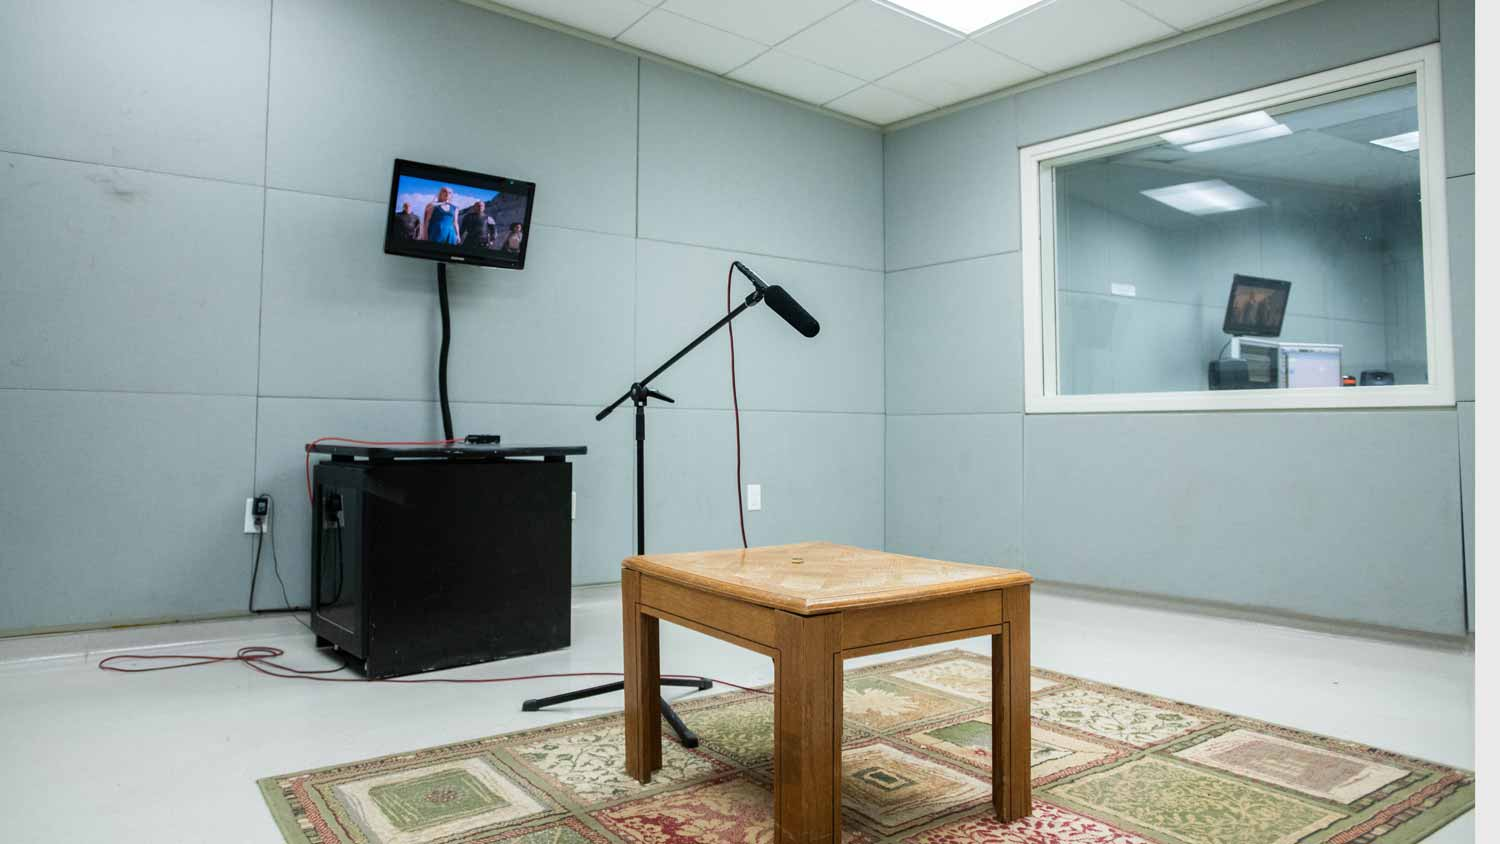 Sound recording room with an empty table on a carpet